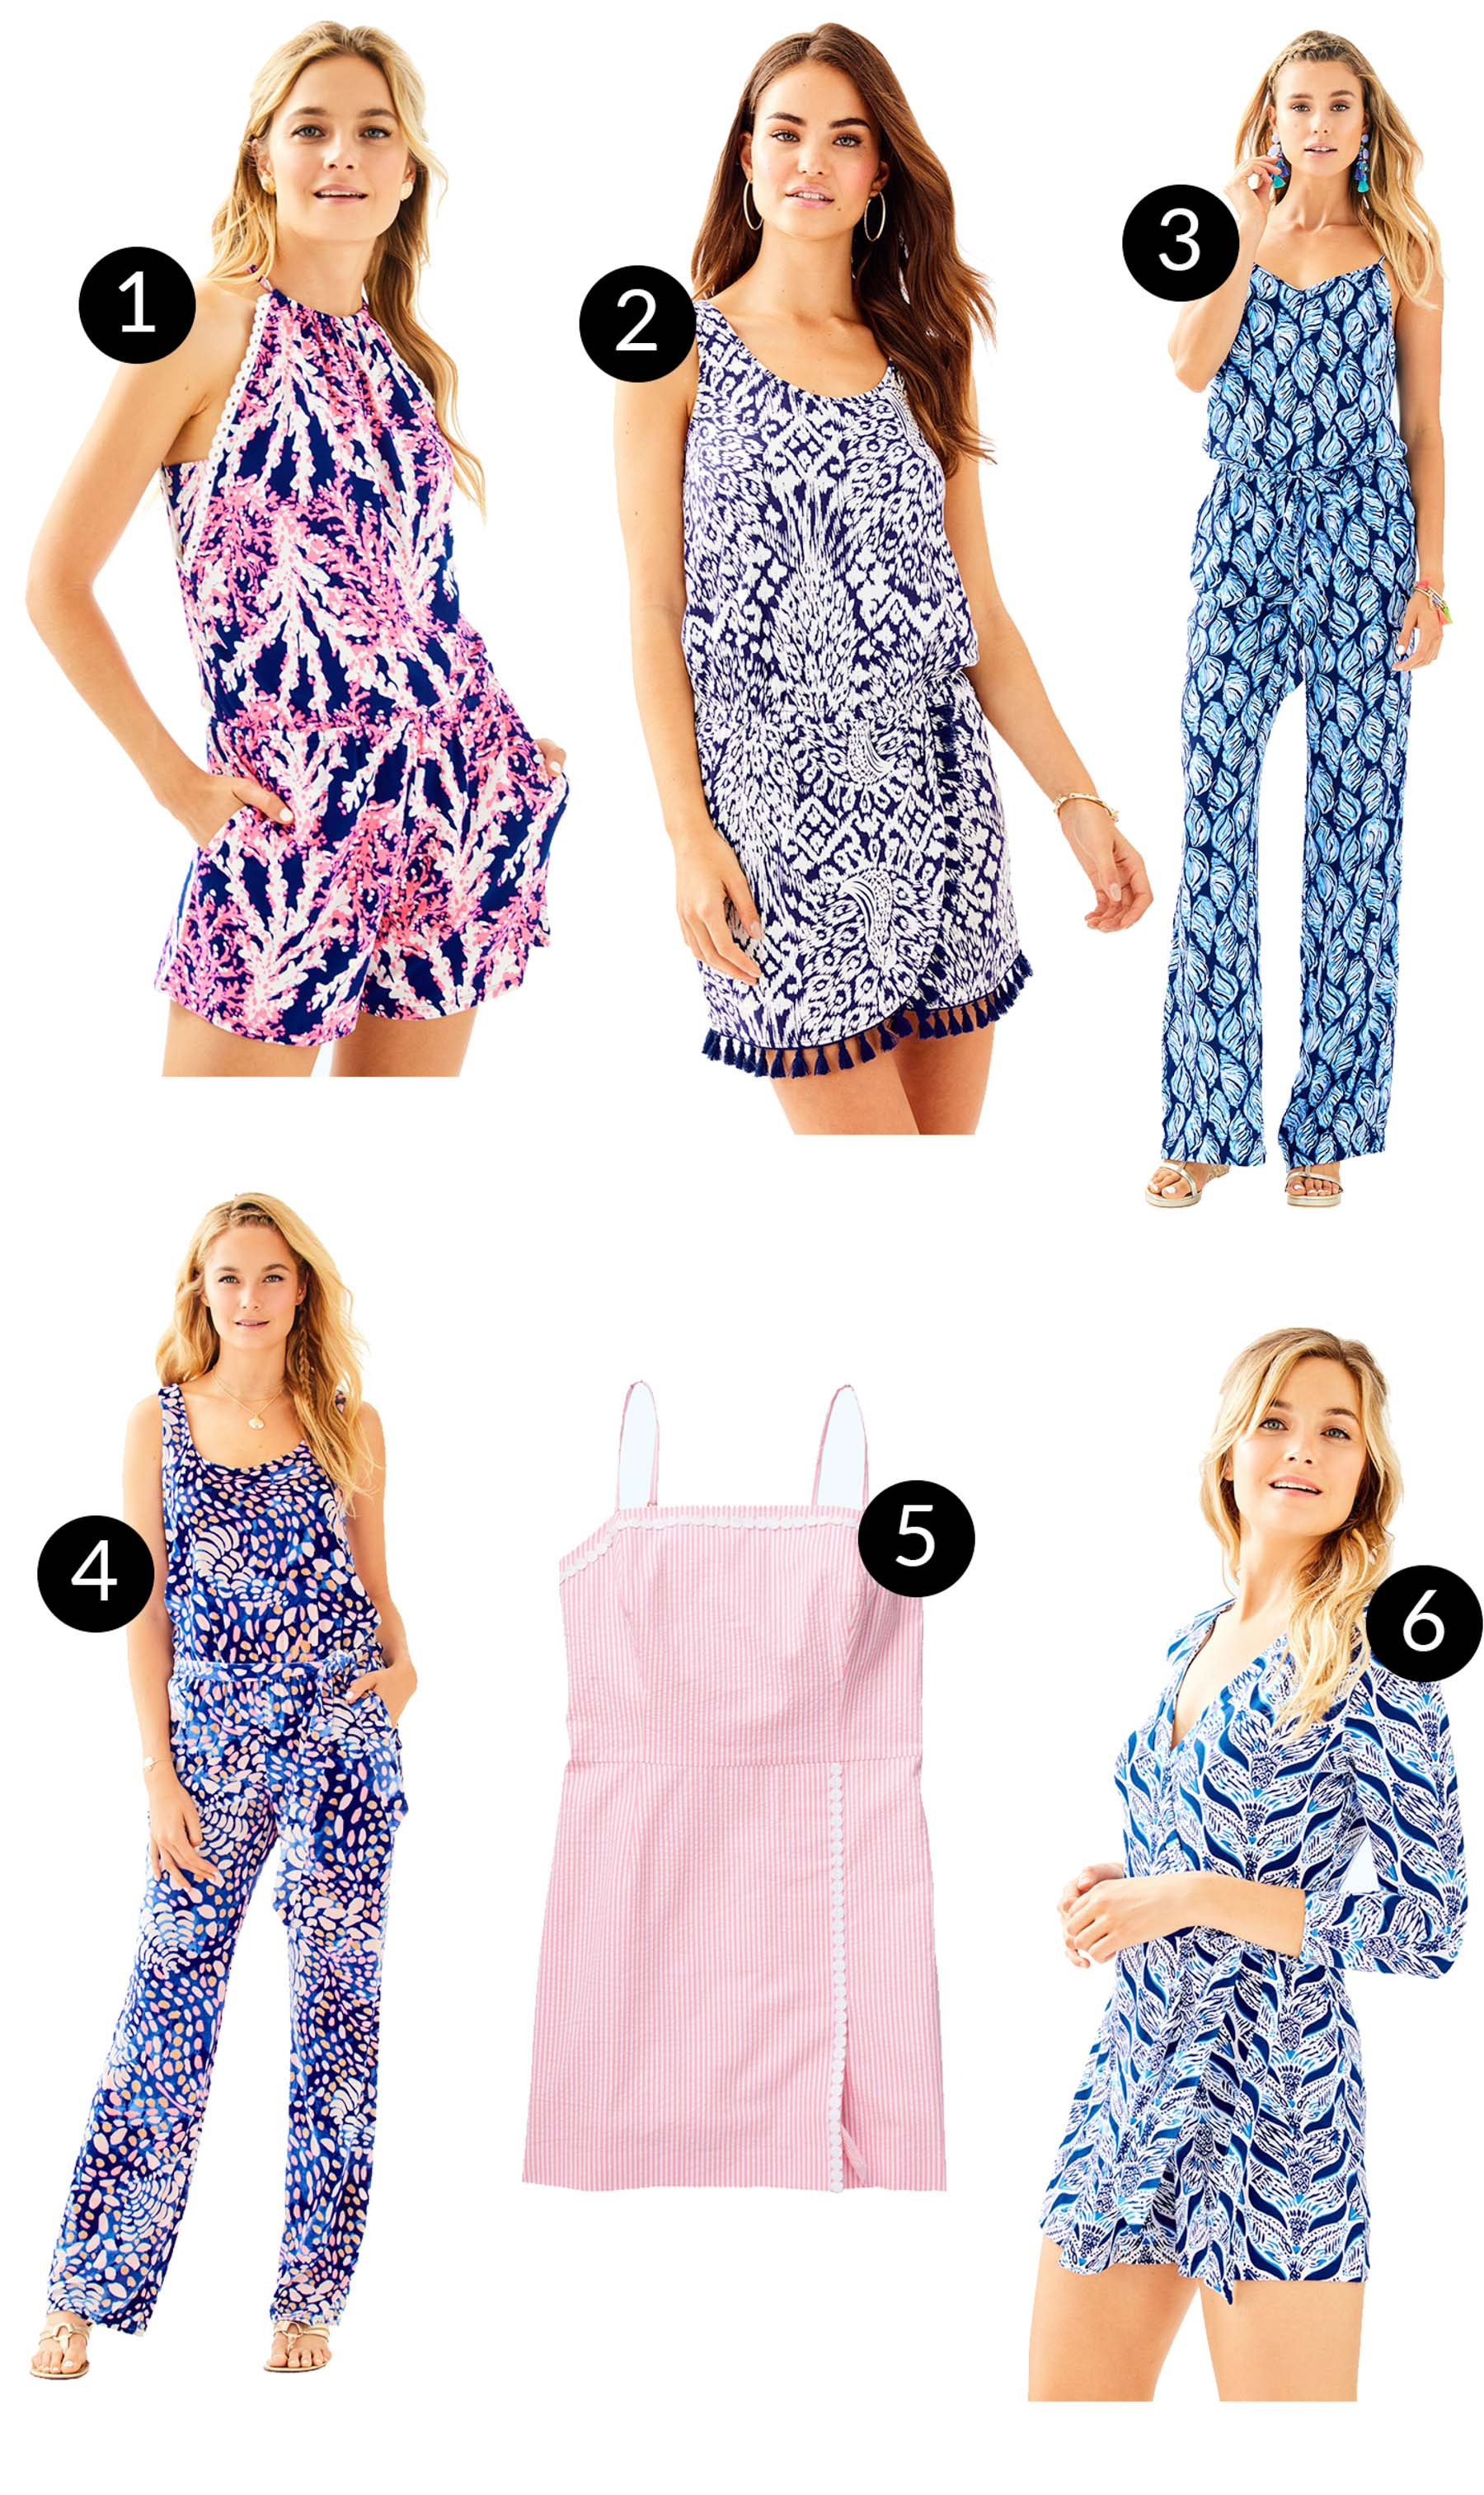 Lilly Pulitzer After Party Sale - Jumpsuits | Kelly in the City